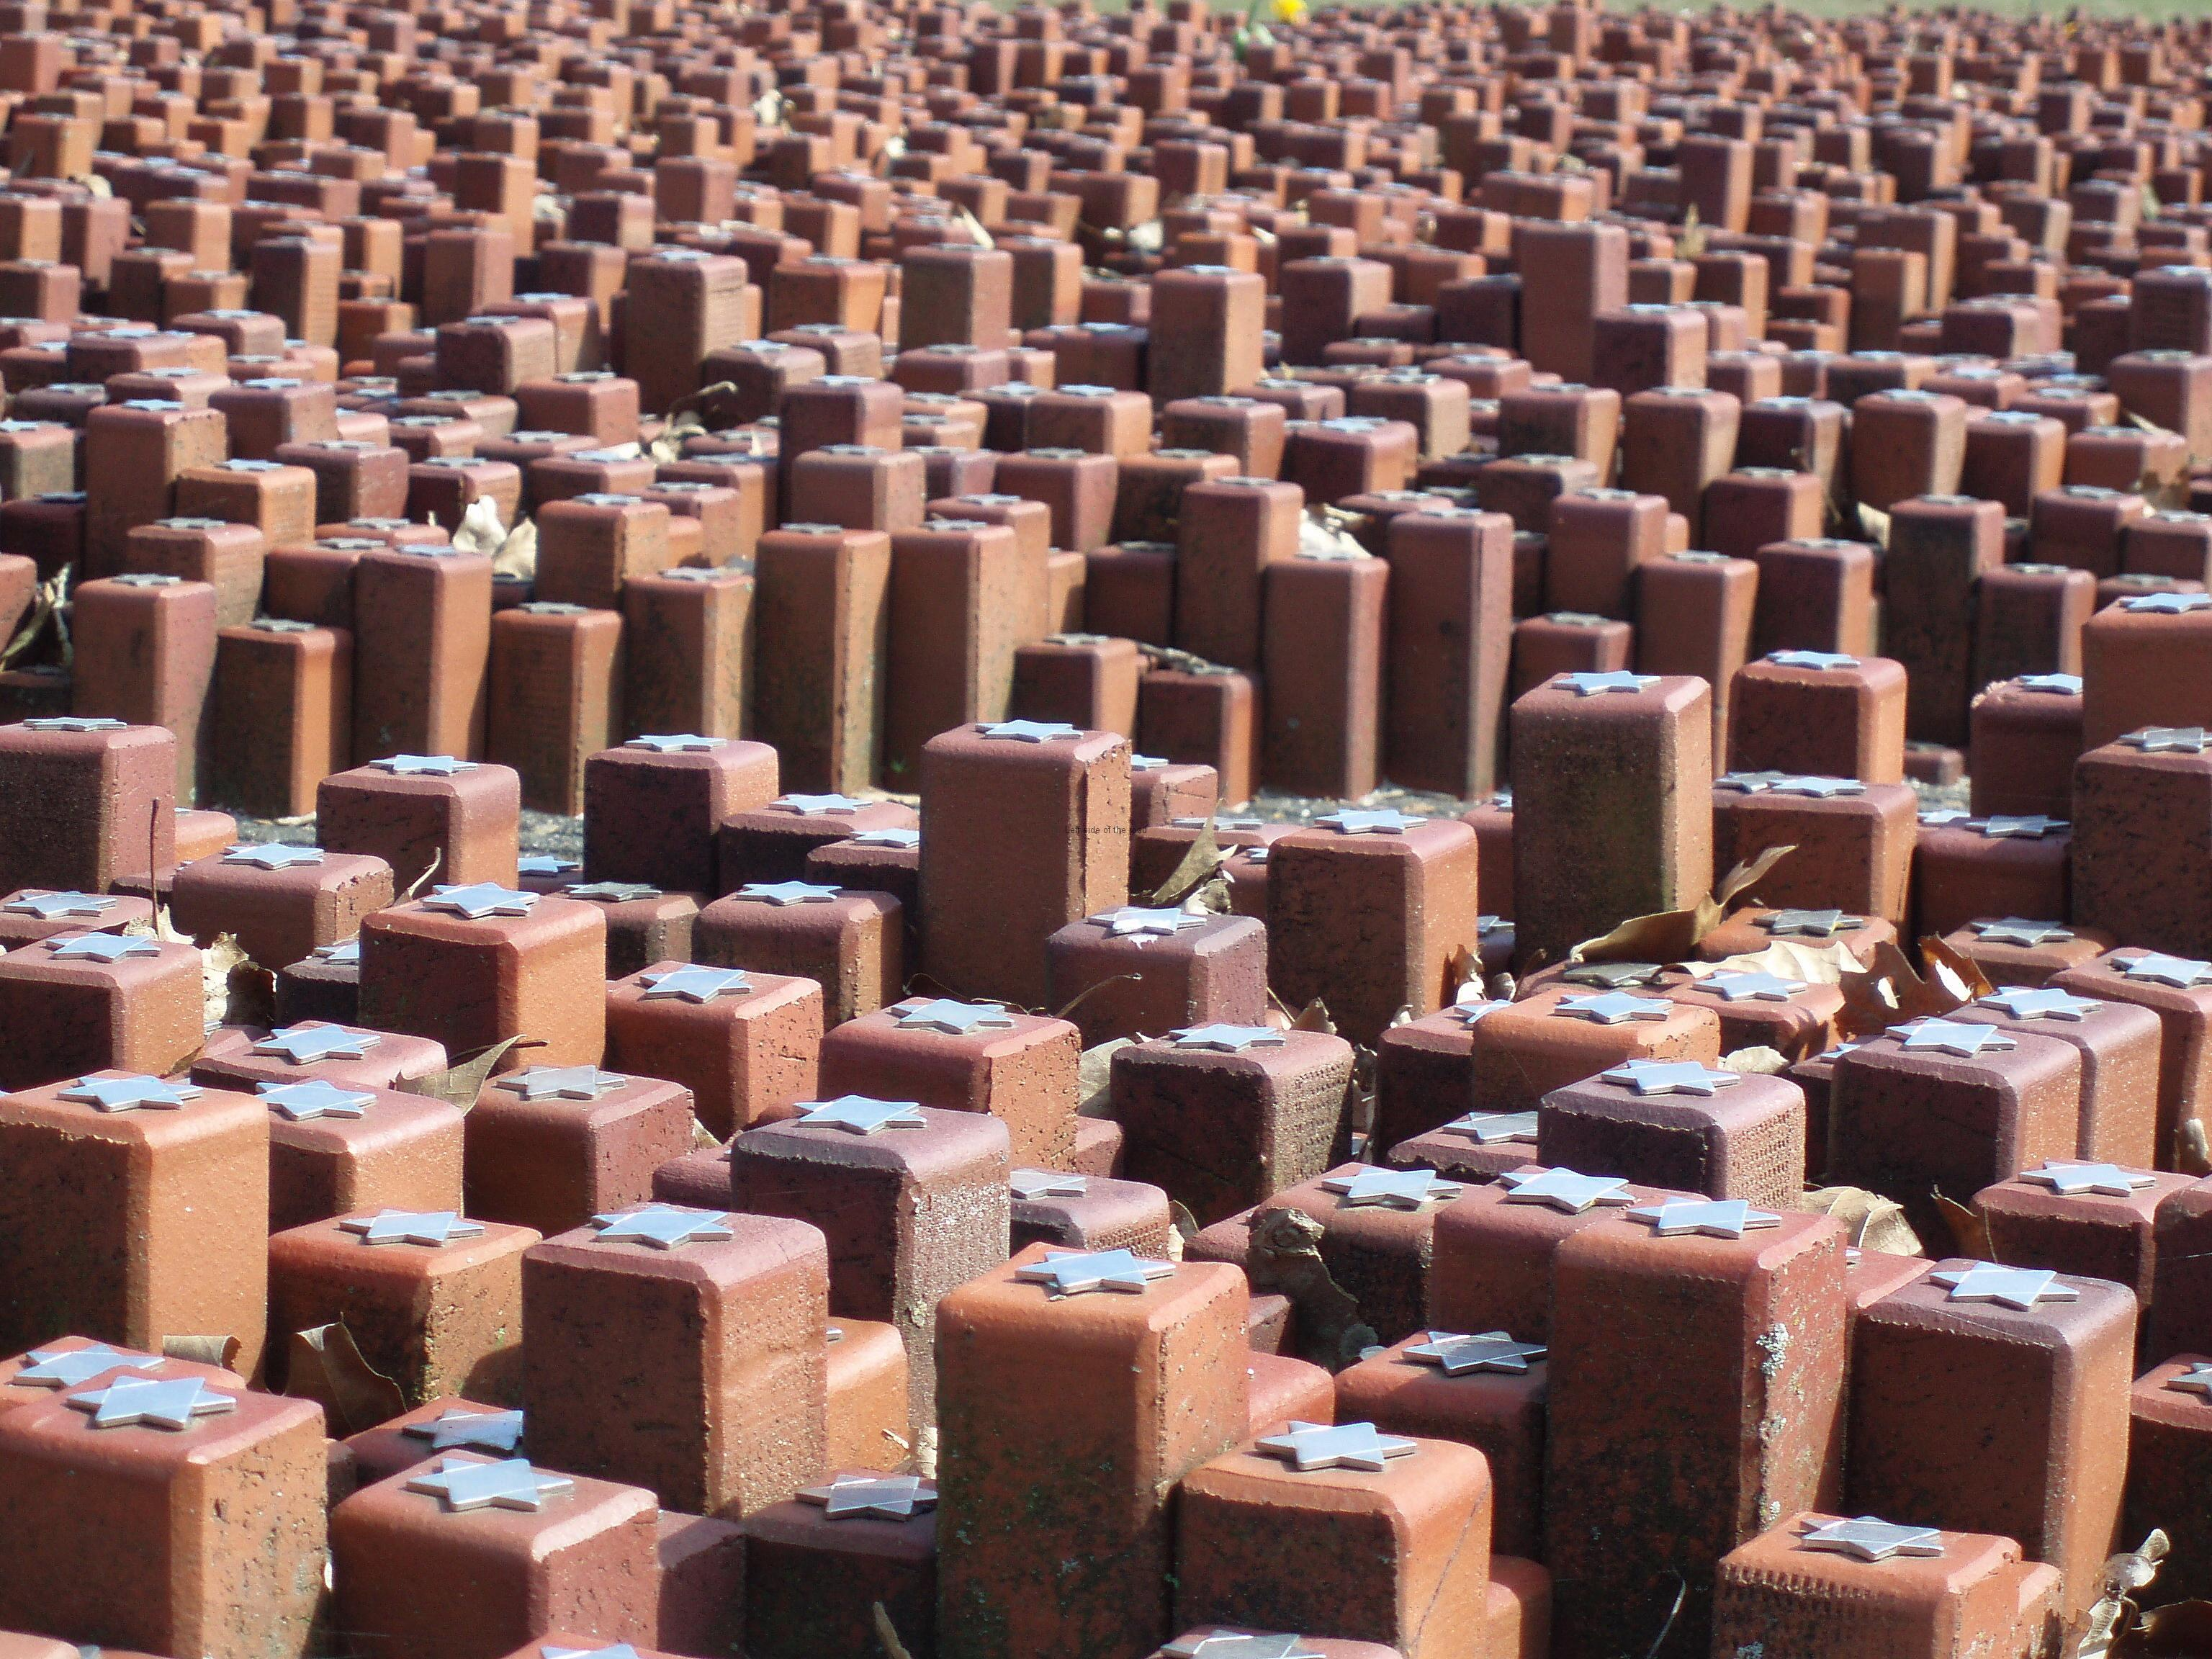 Westerbork Camp Memorial - 102,000 Bricks